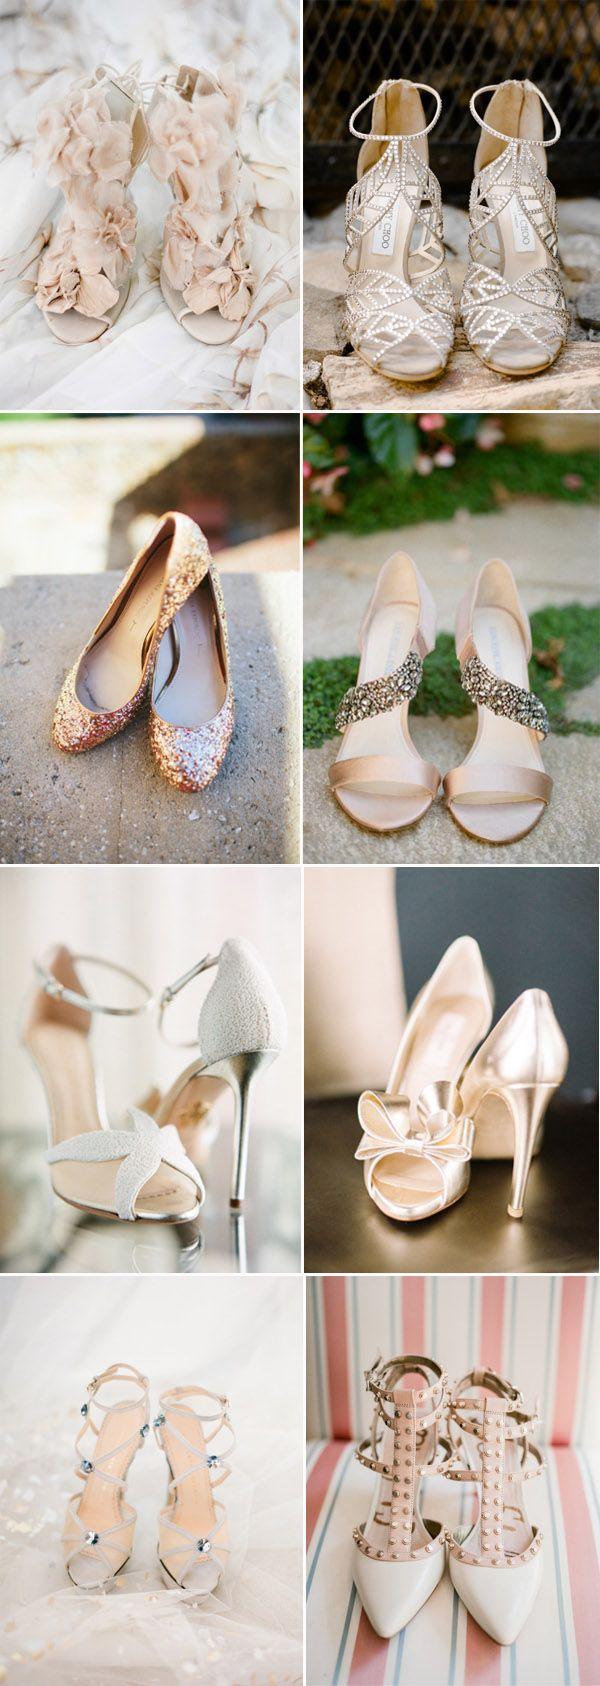 detailed elegant wedding shoes photo ideas for the big day